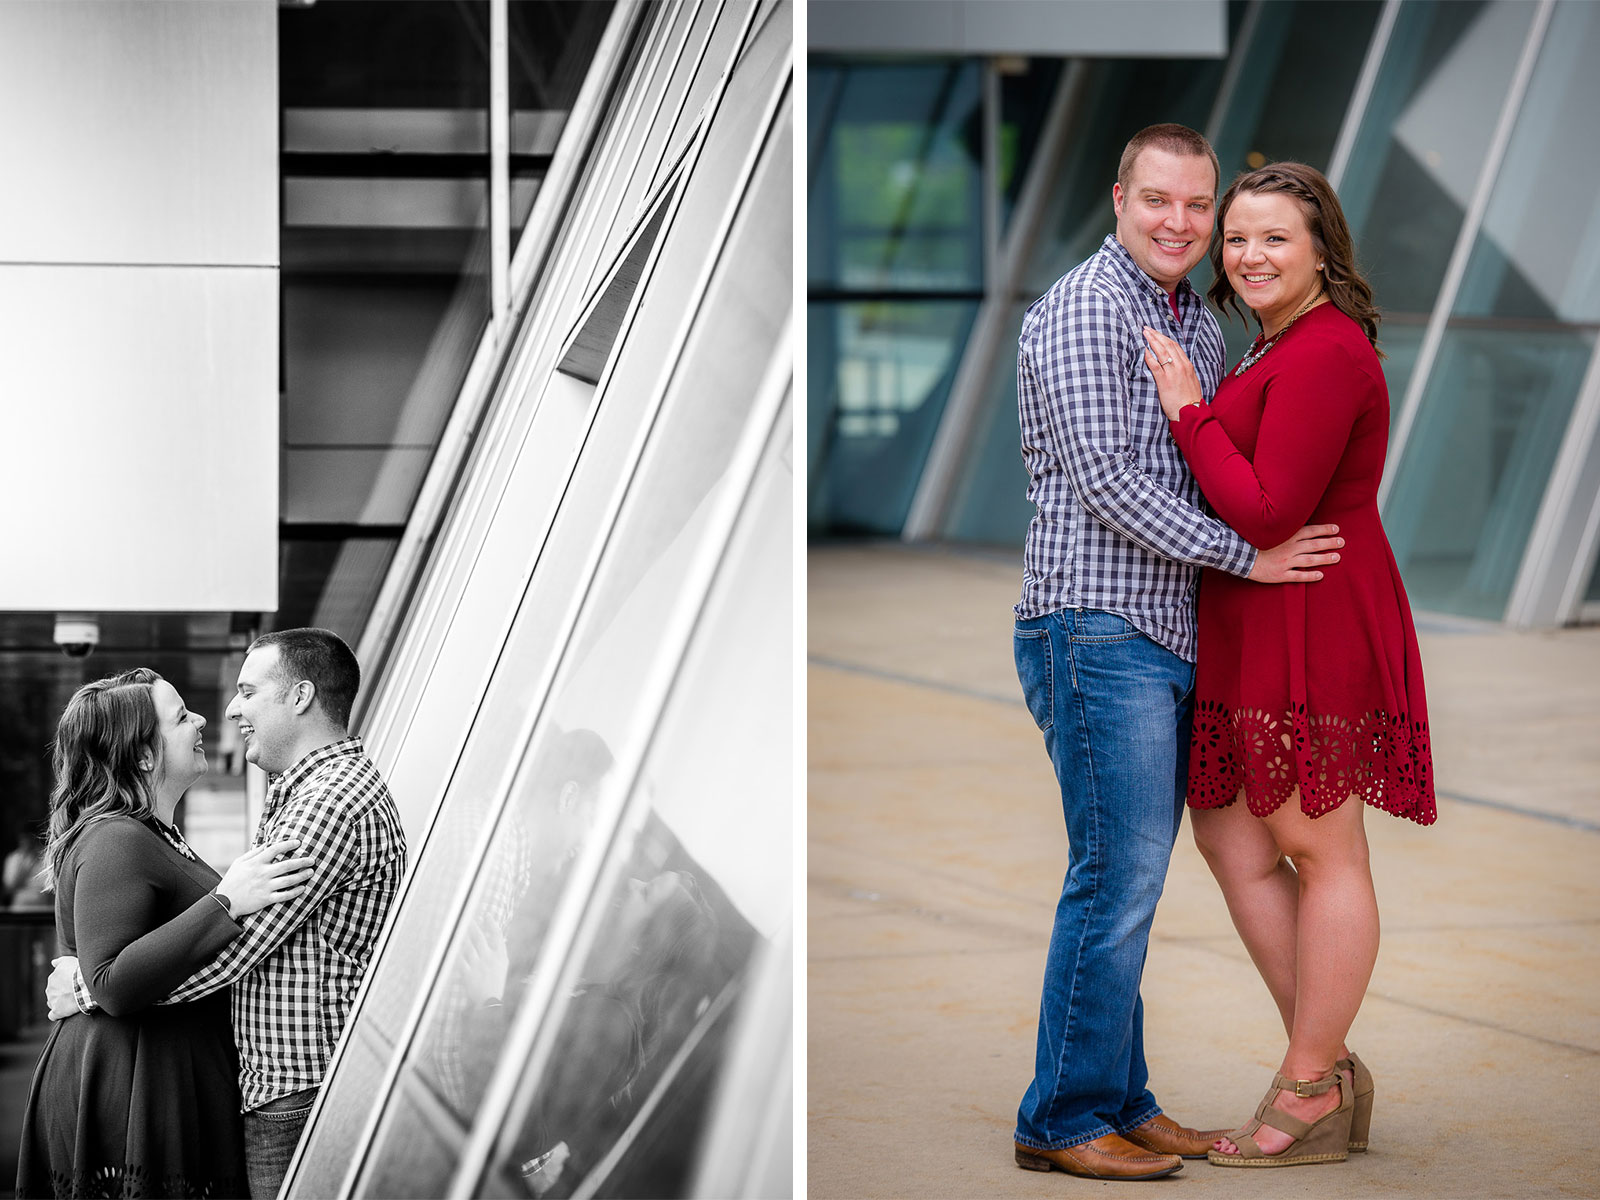 Eric_and_Christy_Photography_Blog_Stacey_Geoff_Engagement-17-18